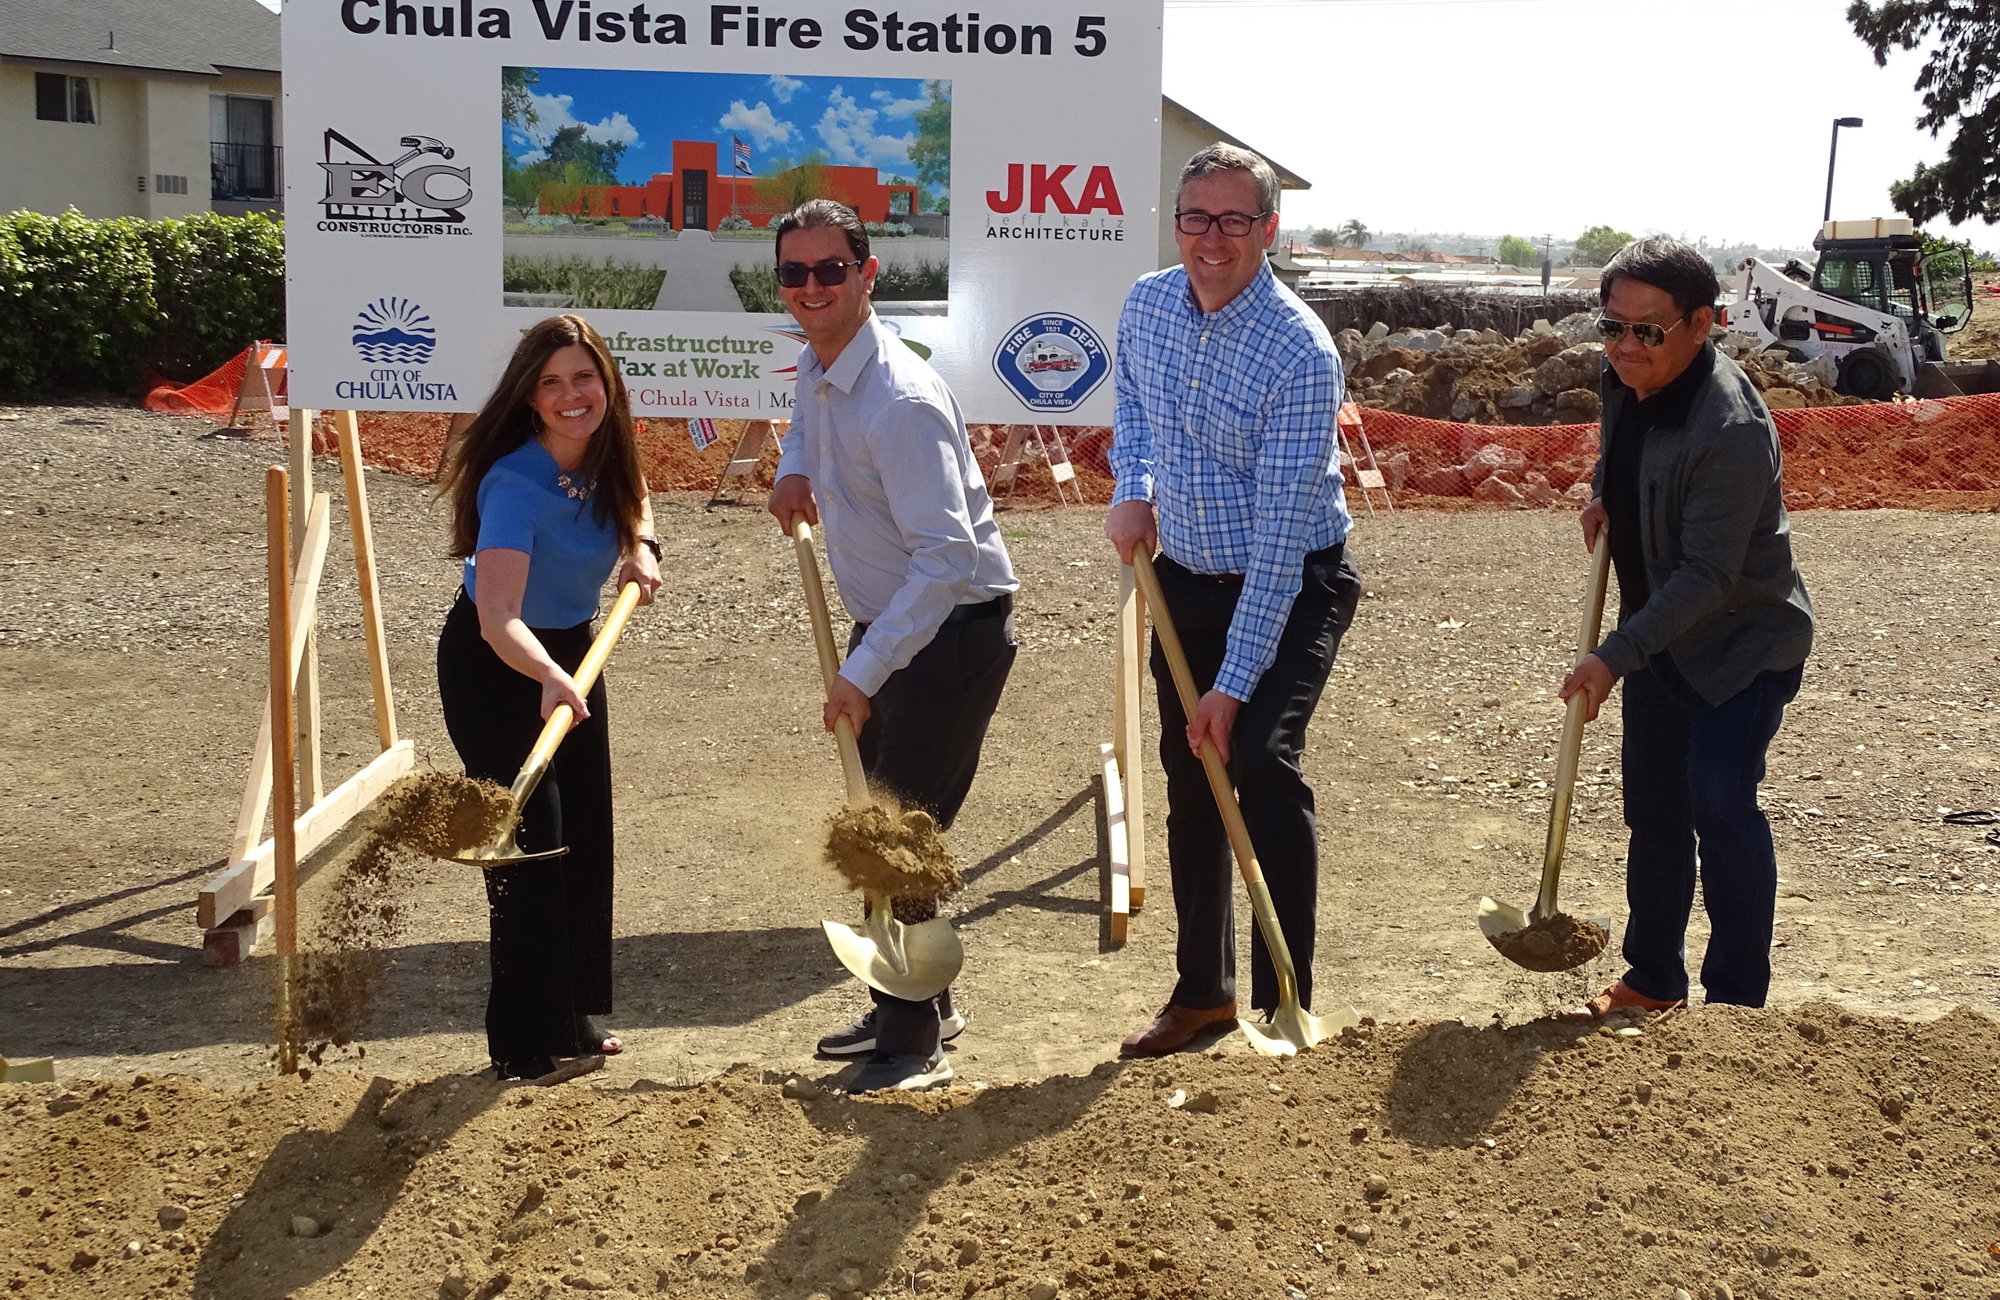 OCMI to represent the City of Chula Vista during construction of Fire Station #5